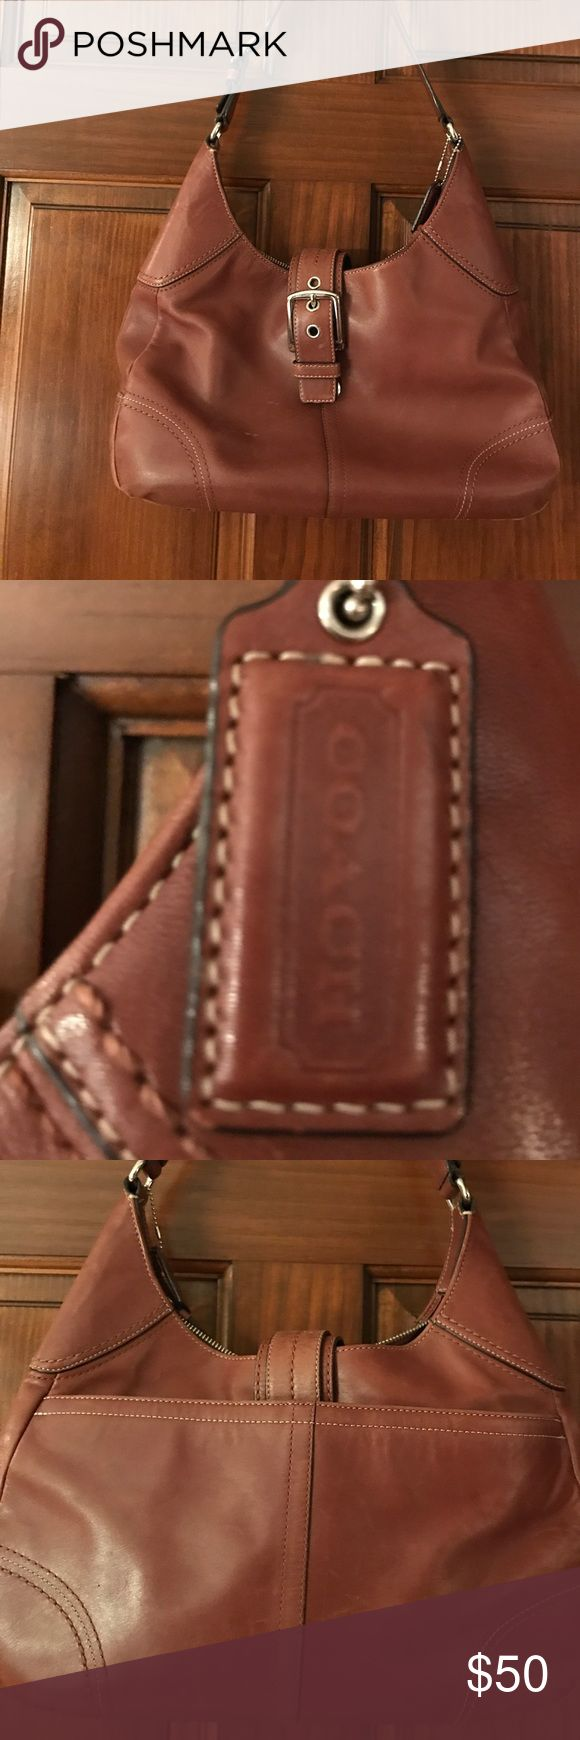 Brown coach hobo bag Brown coach hobo bag.  Very good used condition.  Leather is a soft but no tears. Coach Bags Hobos